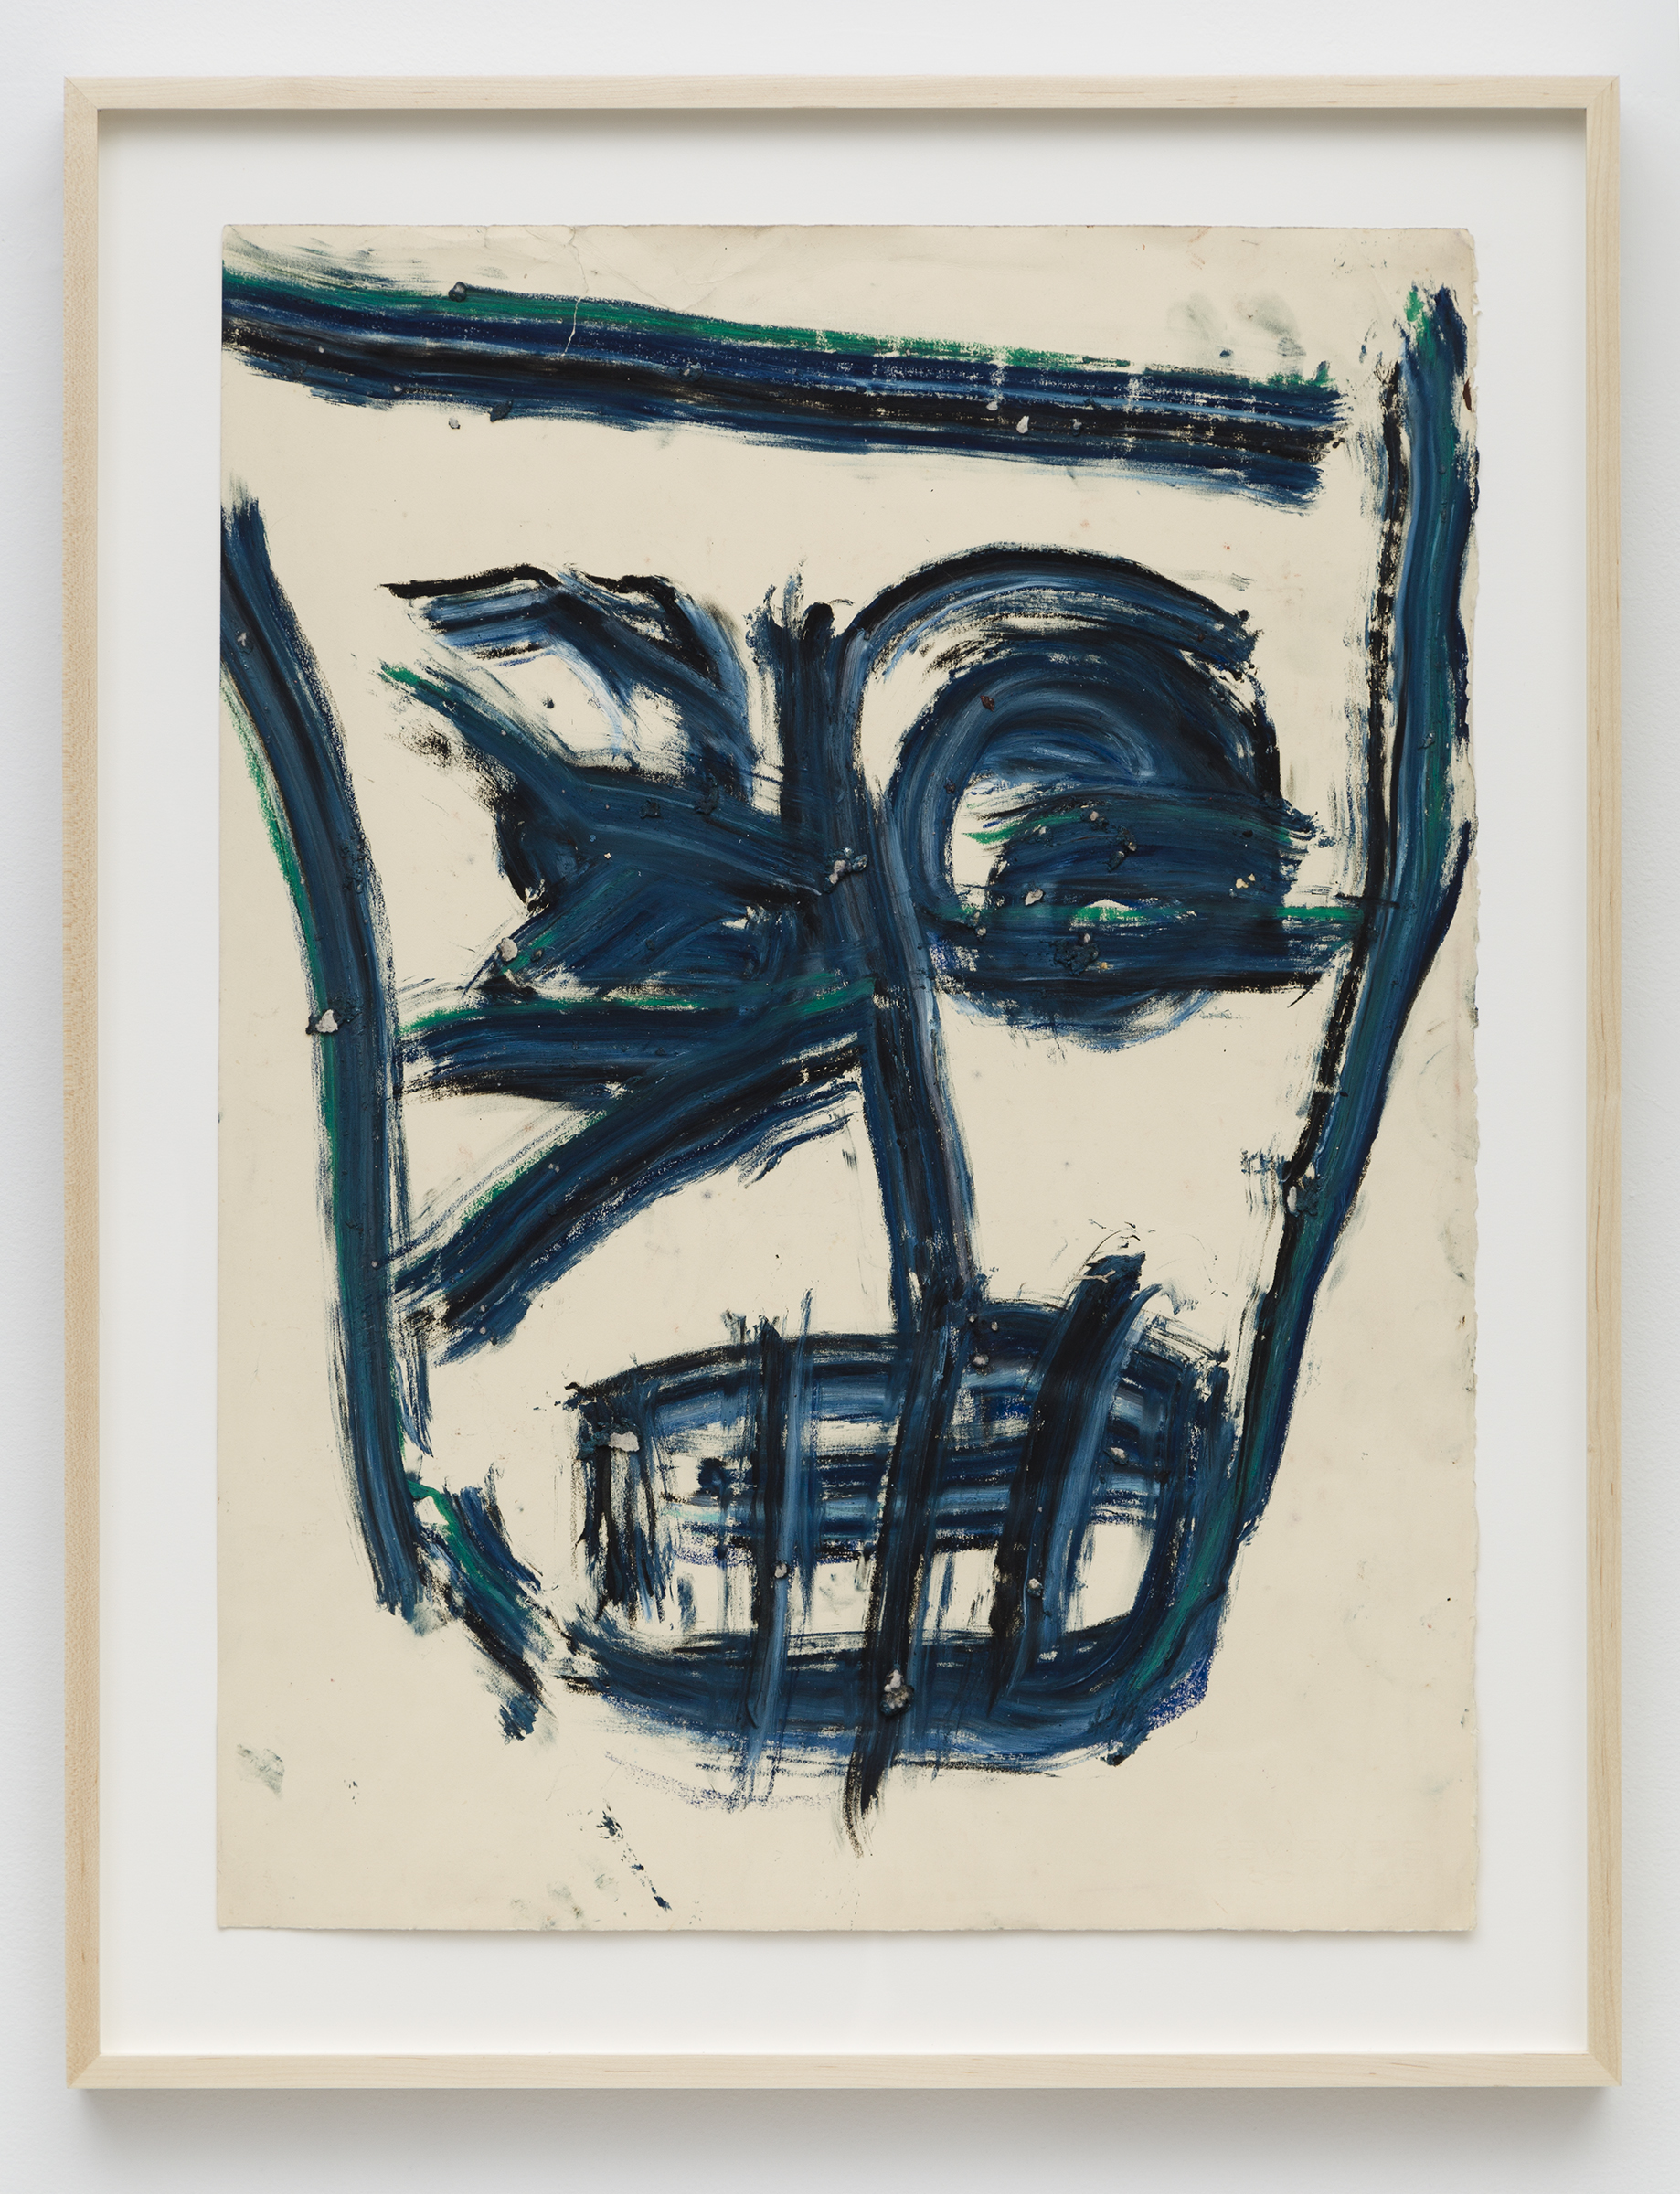 Dan Asher,  Untitled , 1983, oil stick on paper, 30 × 22 ¼ in., 35 ½ × 27 ½ in. (framed)